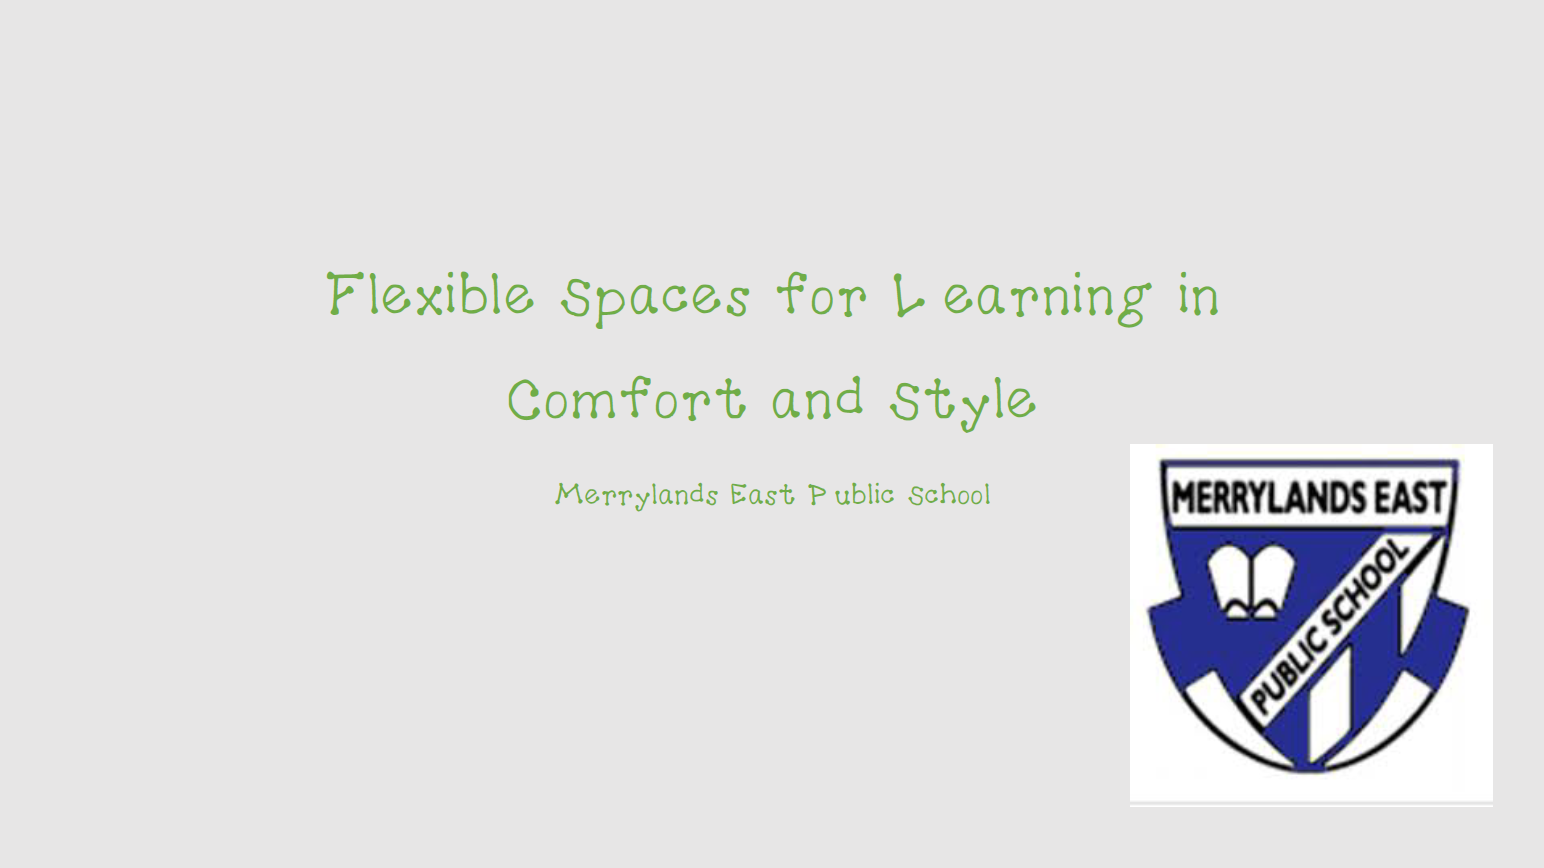 Flexible Spaces for L earning in Comfort and Style